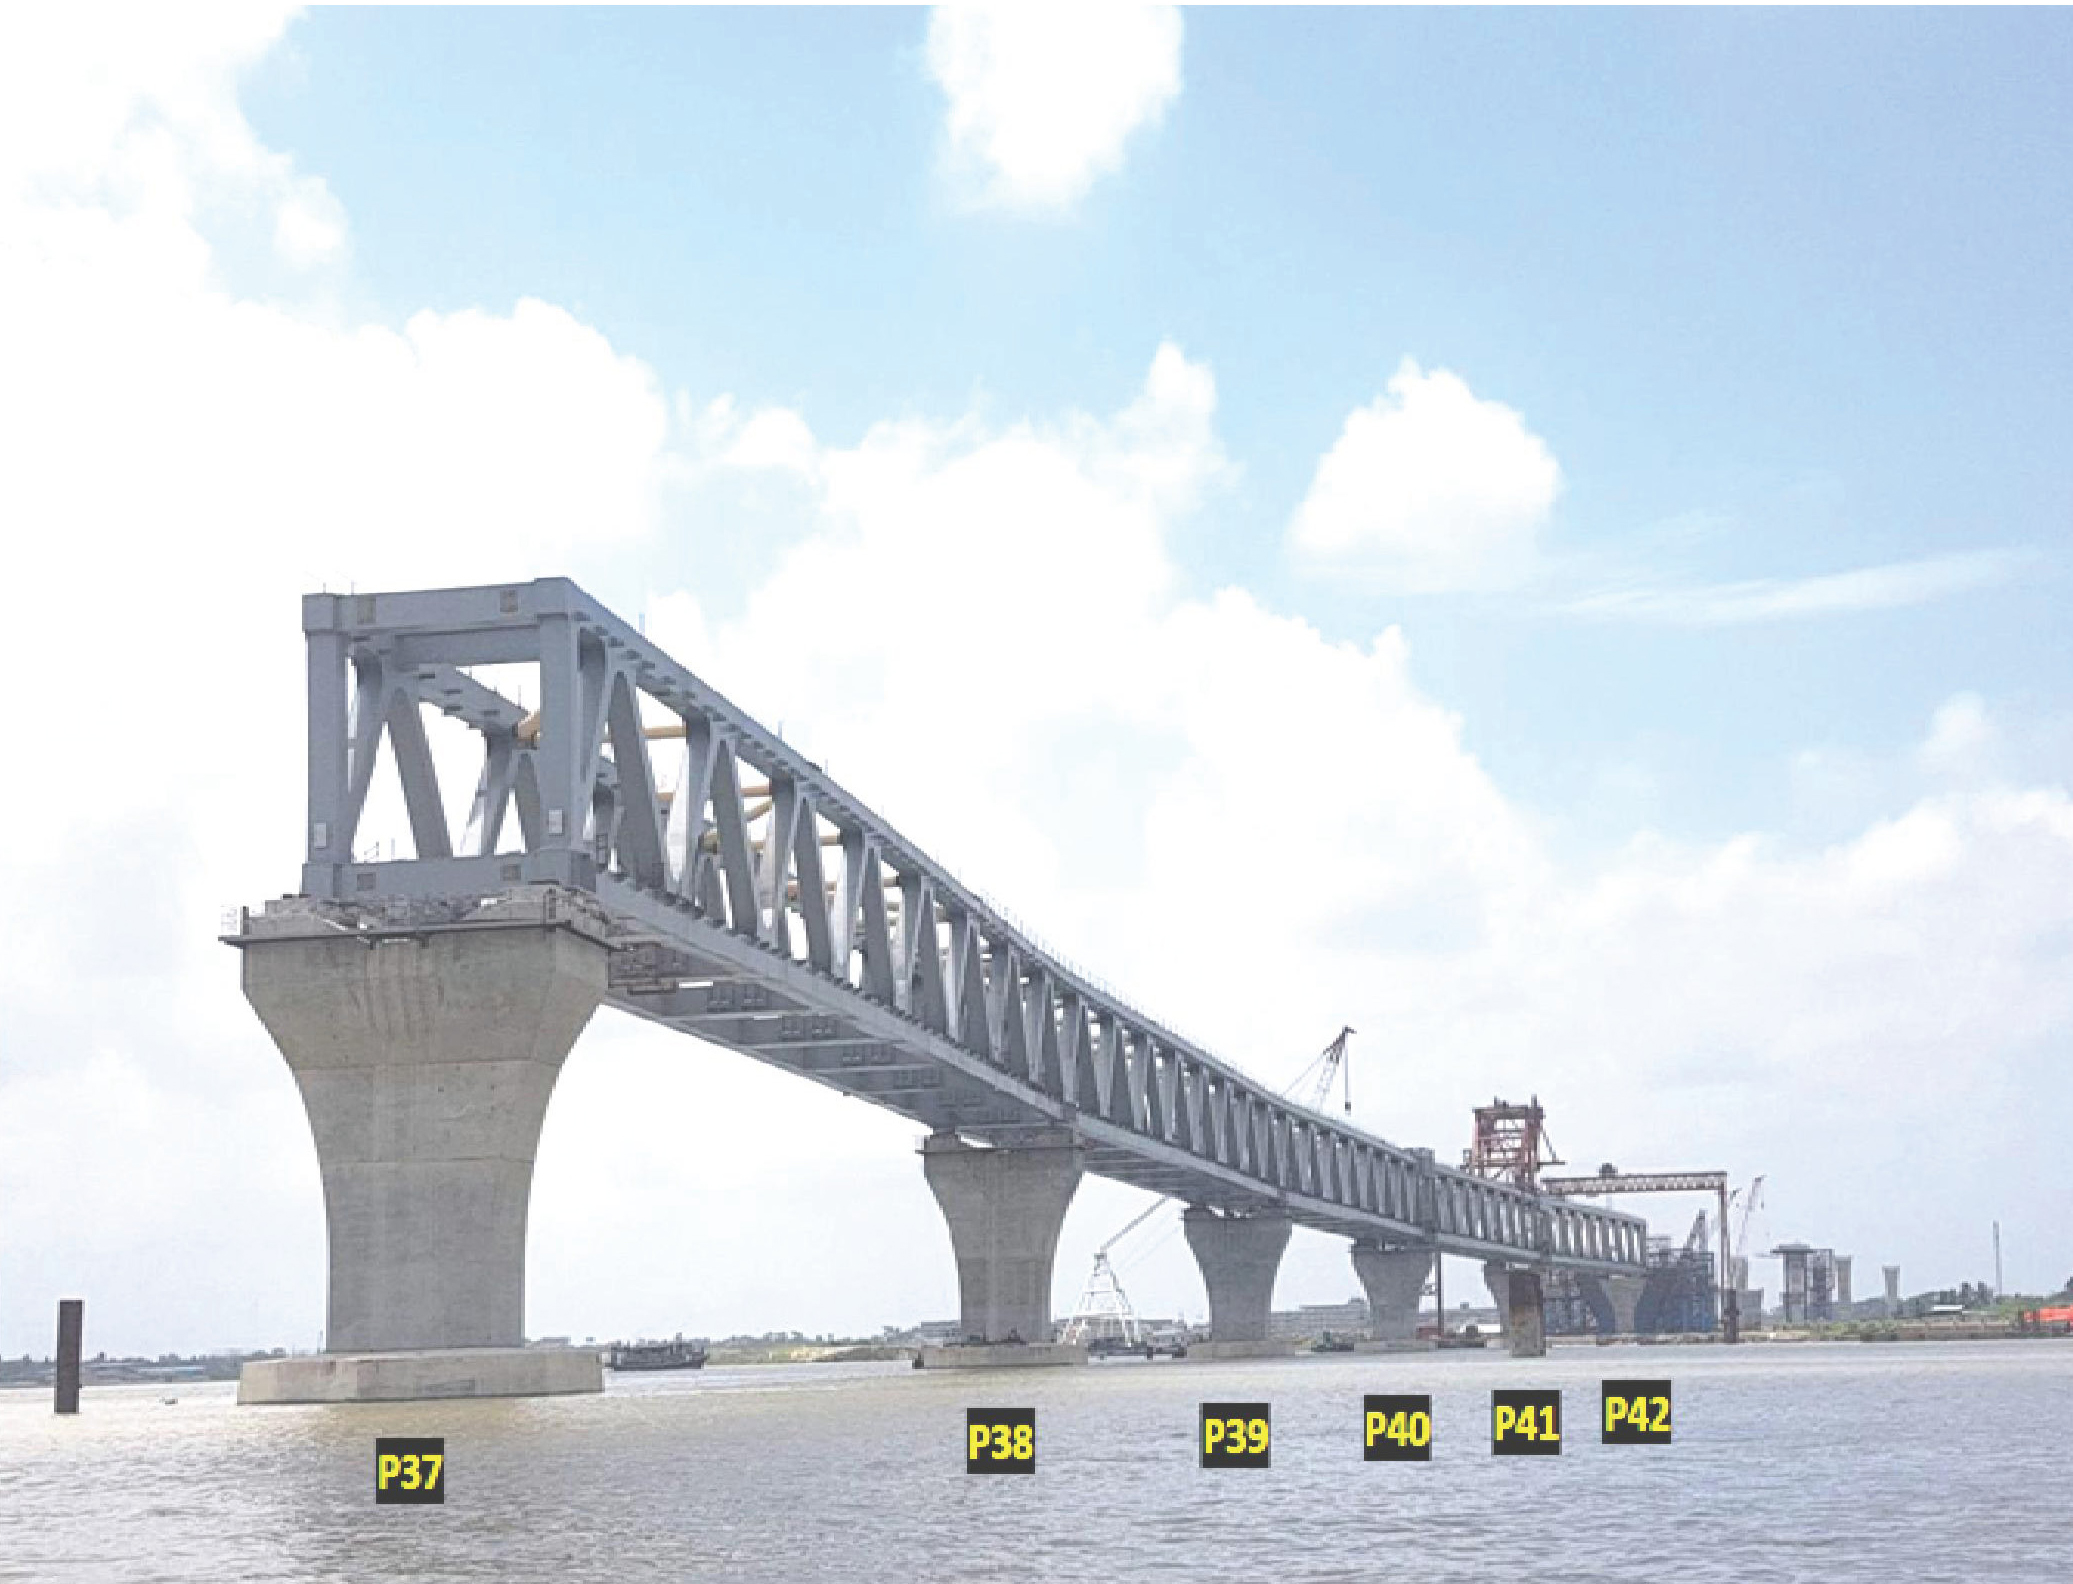 PADMA MULTIPURPOSE BRIDGE PROJECT